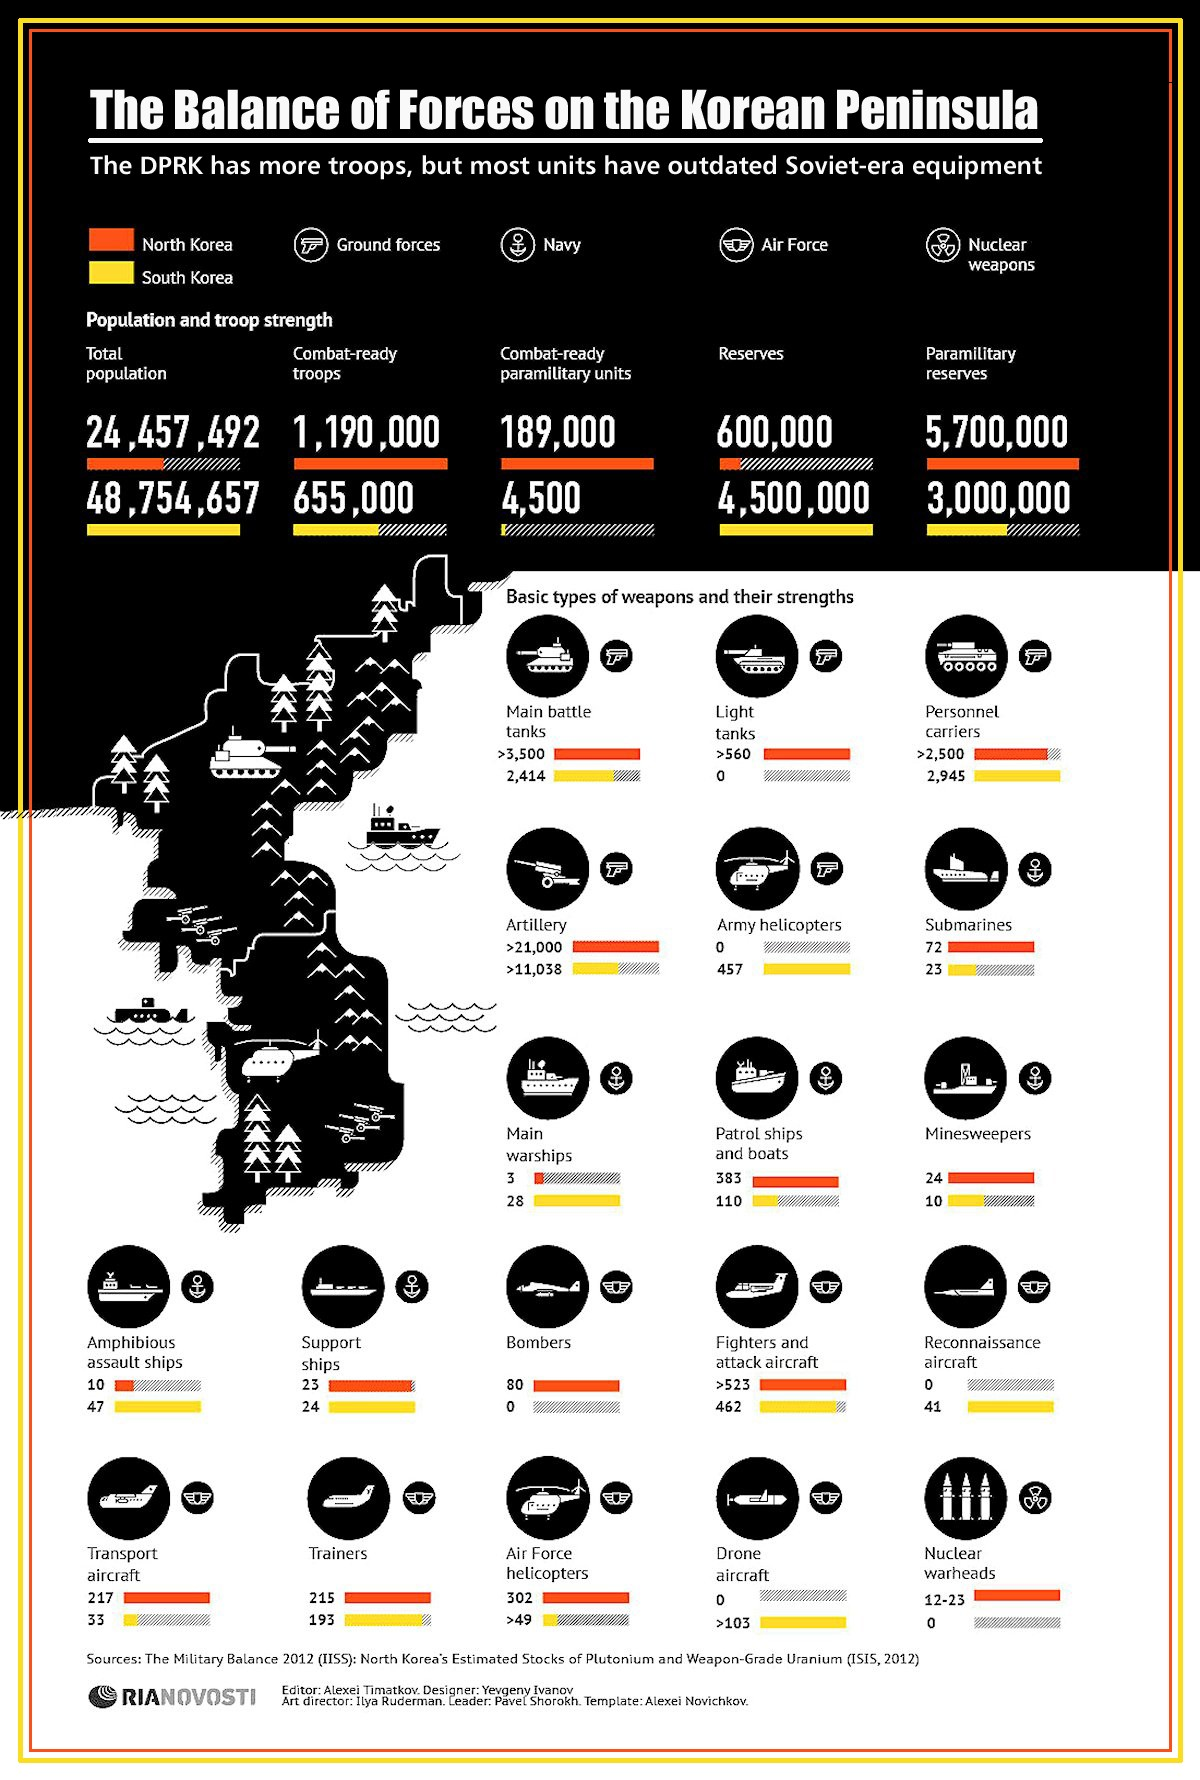 00 RIA-Novosti Infographics. The Balance of Forces on the Korean Peninsula. 2013